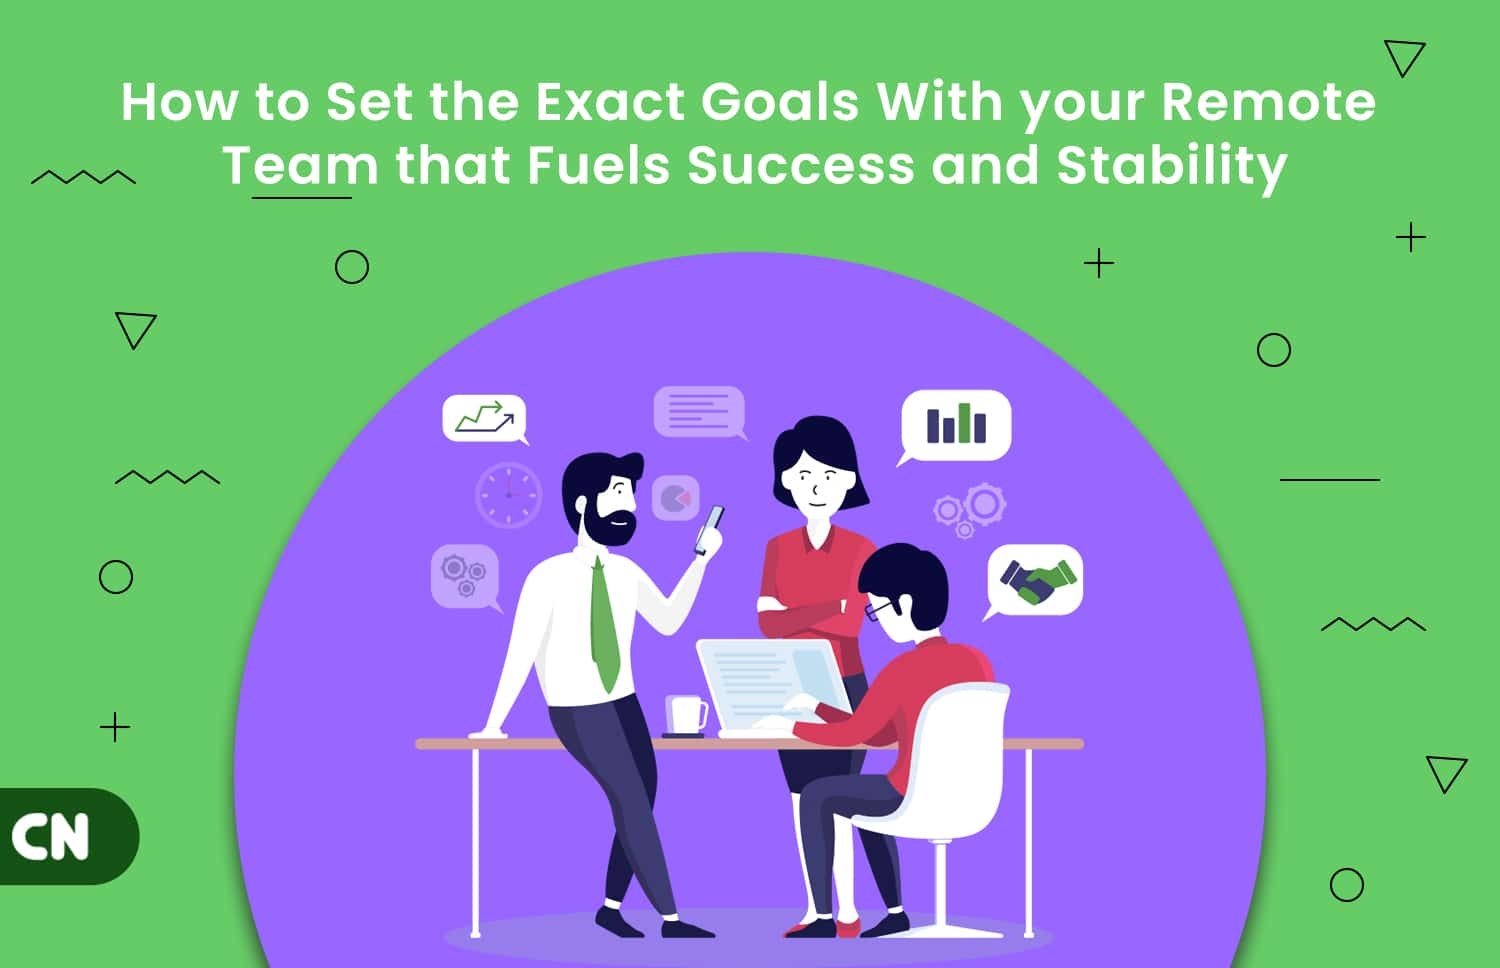 How to set the exact goals with your remote team that fuels success and stability